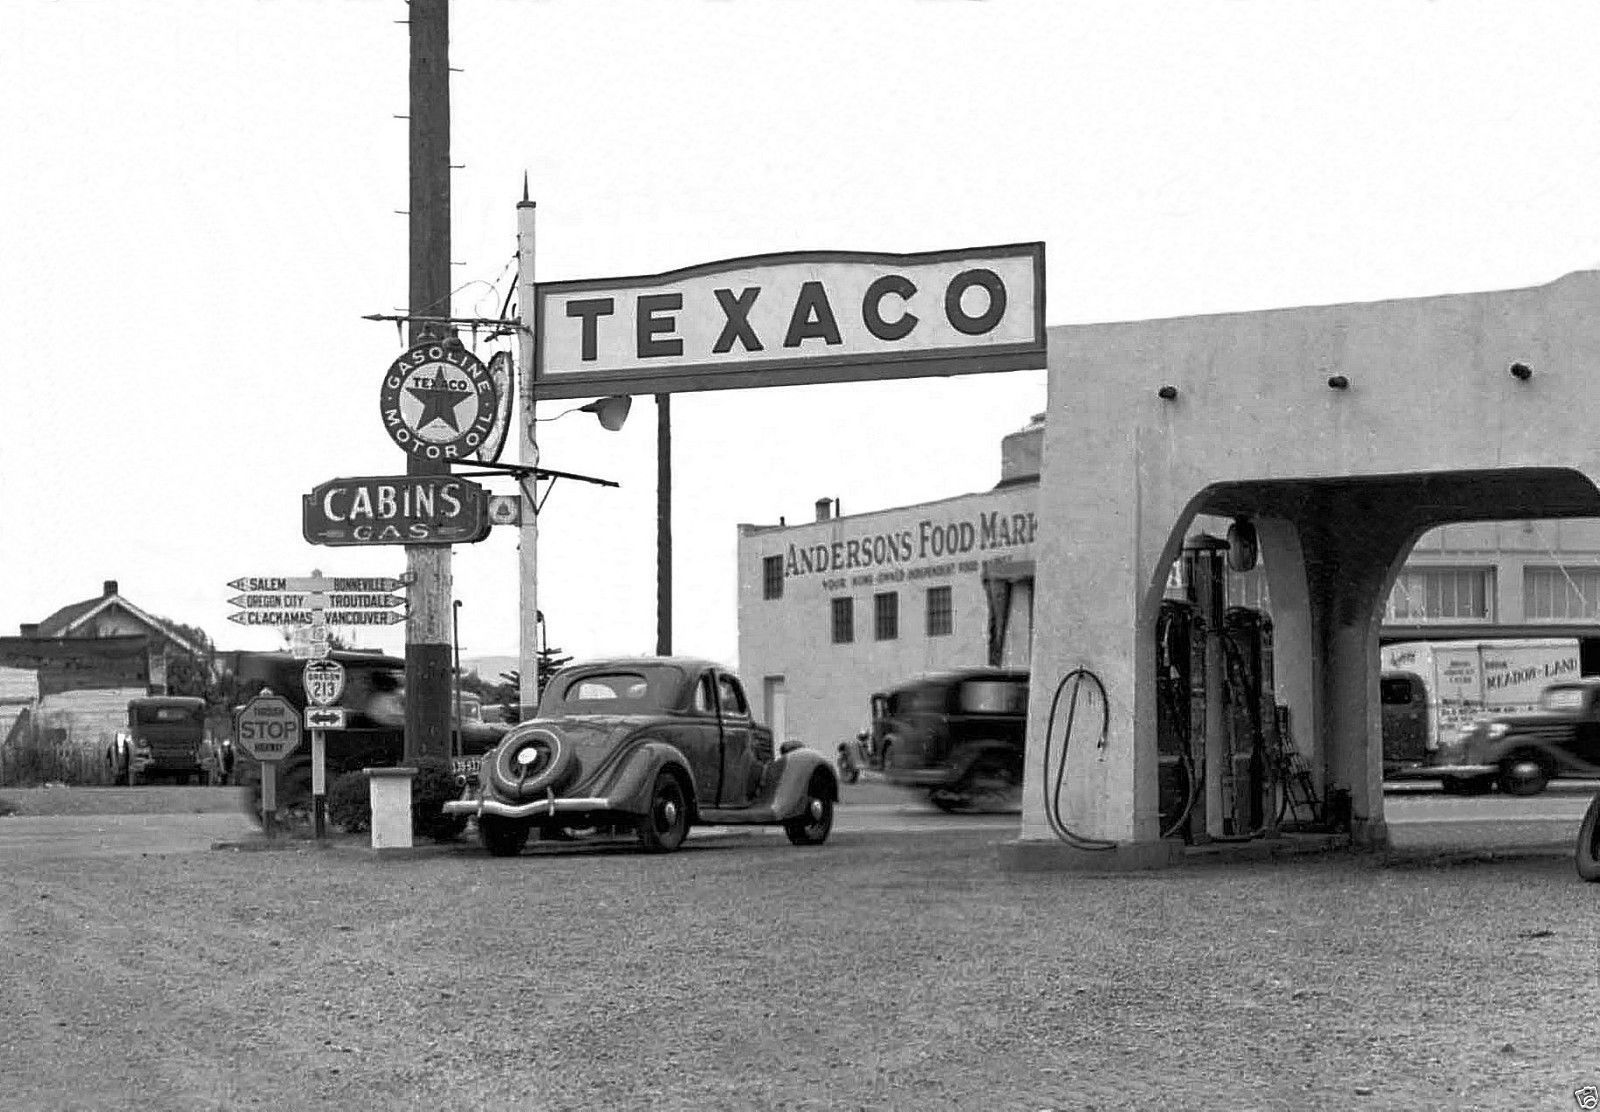 Pin by Kenny Berg on Vintage Car Scenes | Pinterest | Gas pumps ...